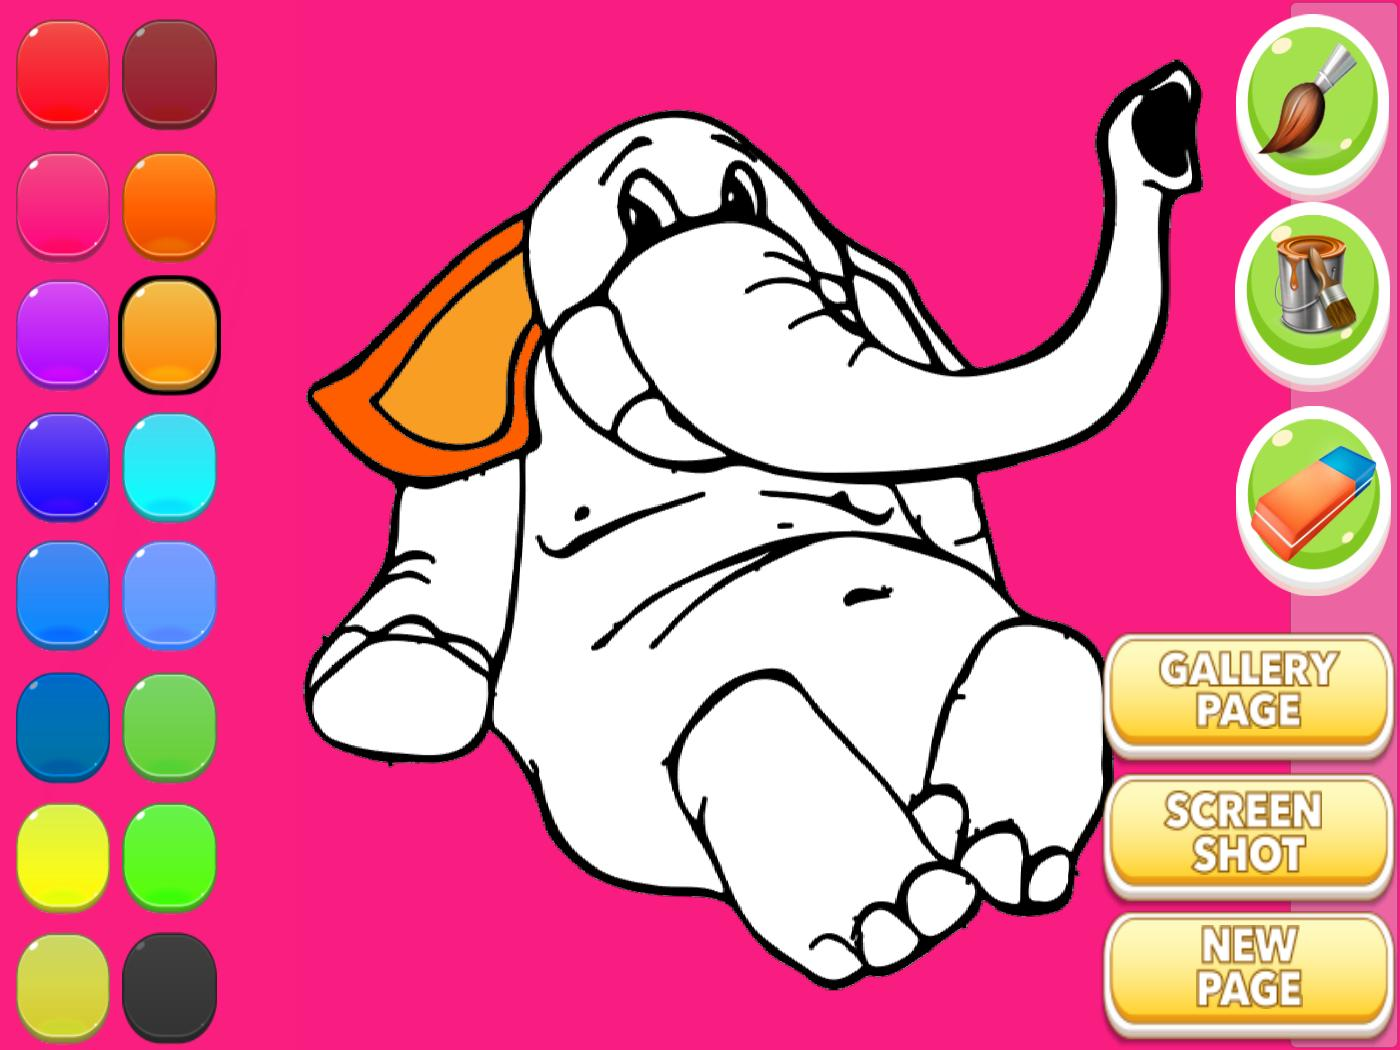 Gajah Buku Mewarnai For Android APK Download